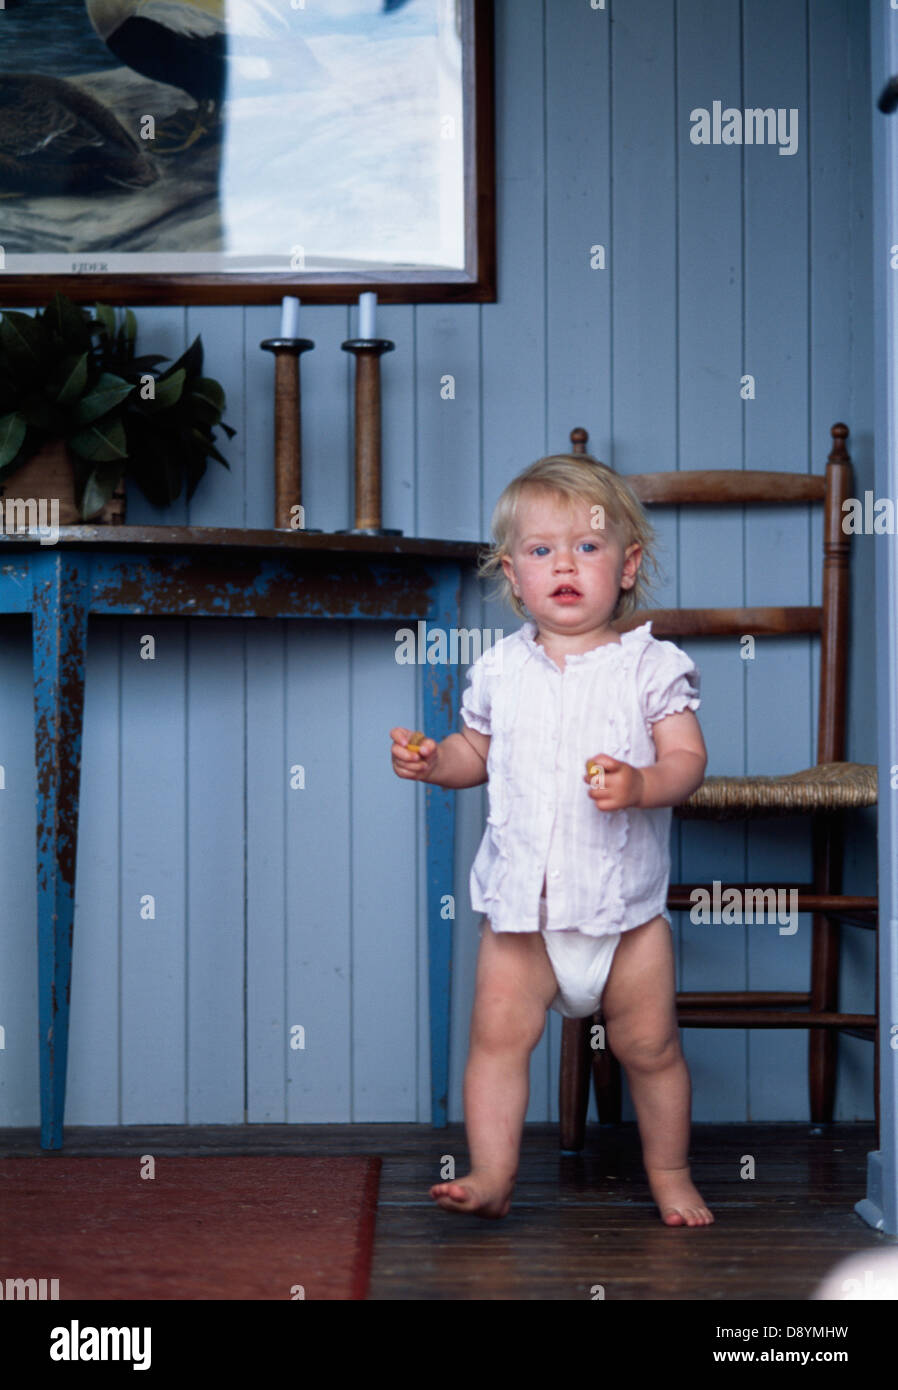 wooden potty training chair canopy with footrest baby girl wearing diaper stock photo: 57157237 - alamy